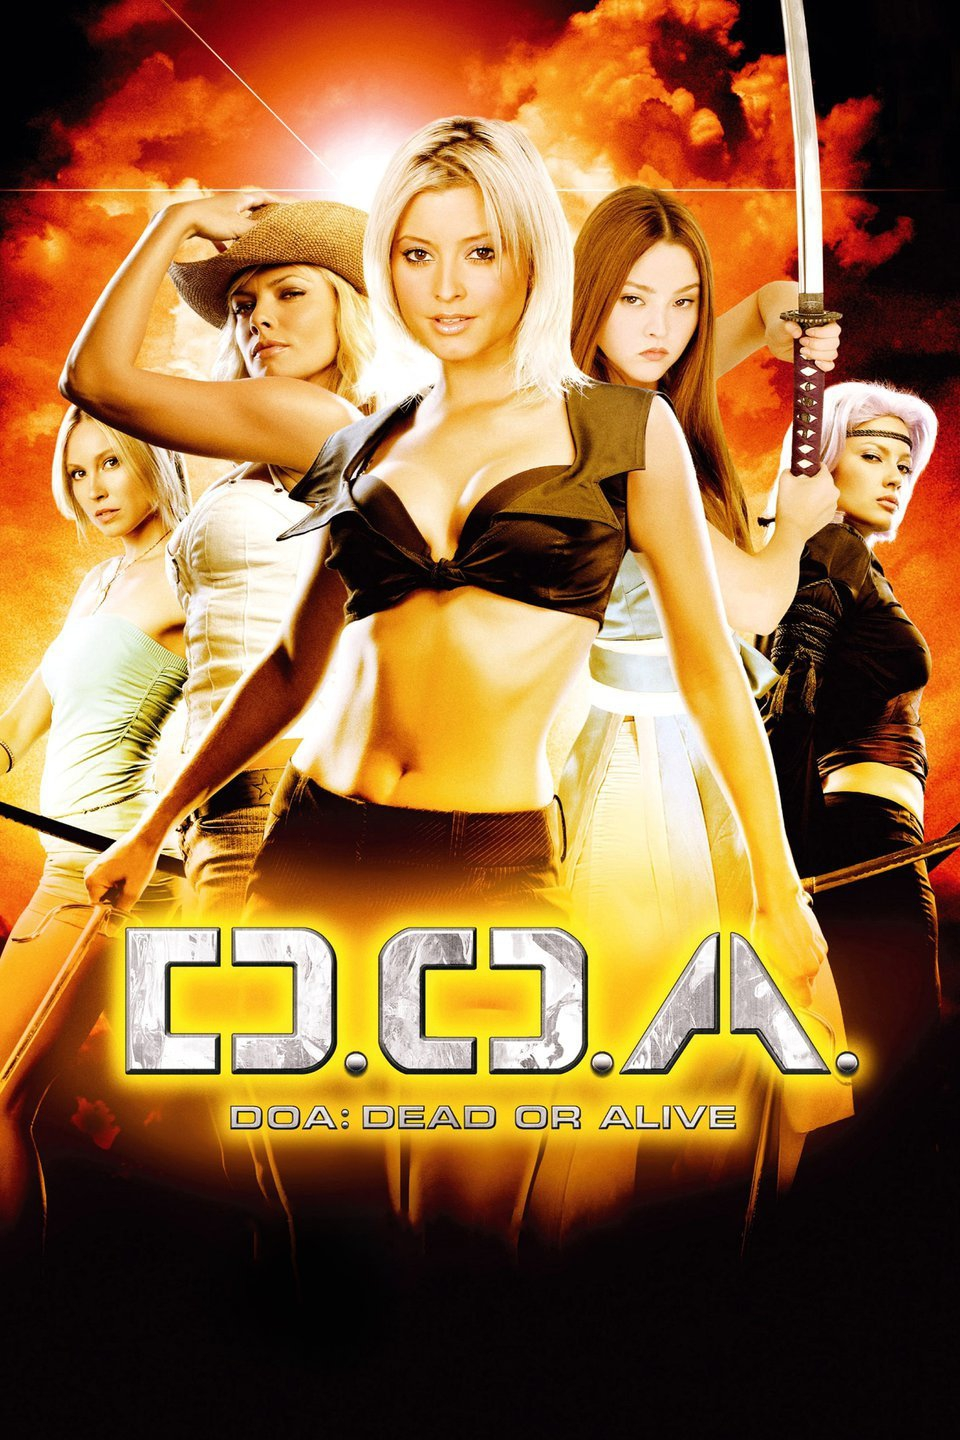 Watch D O A Dead Or Alive 2006 Online For Free The Roku